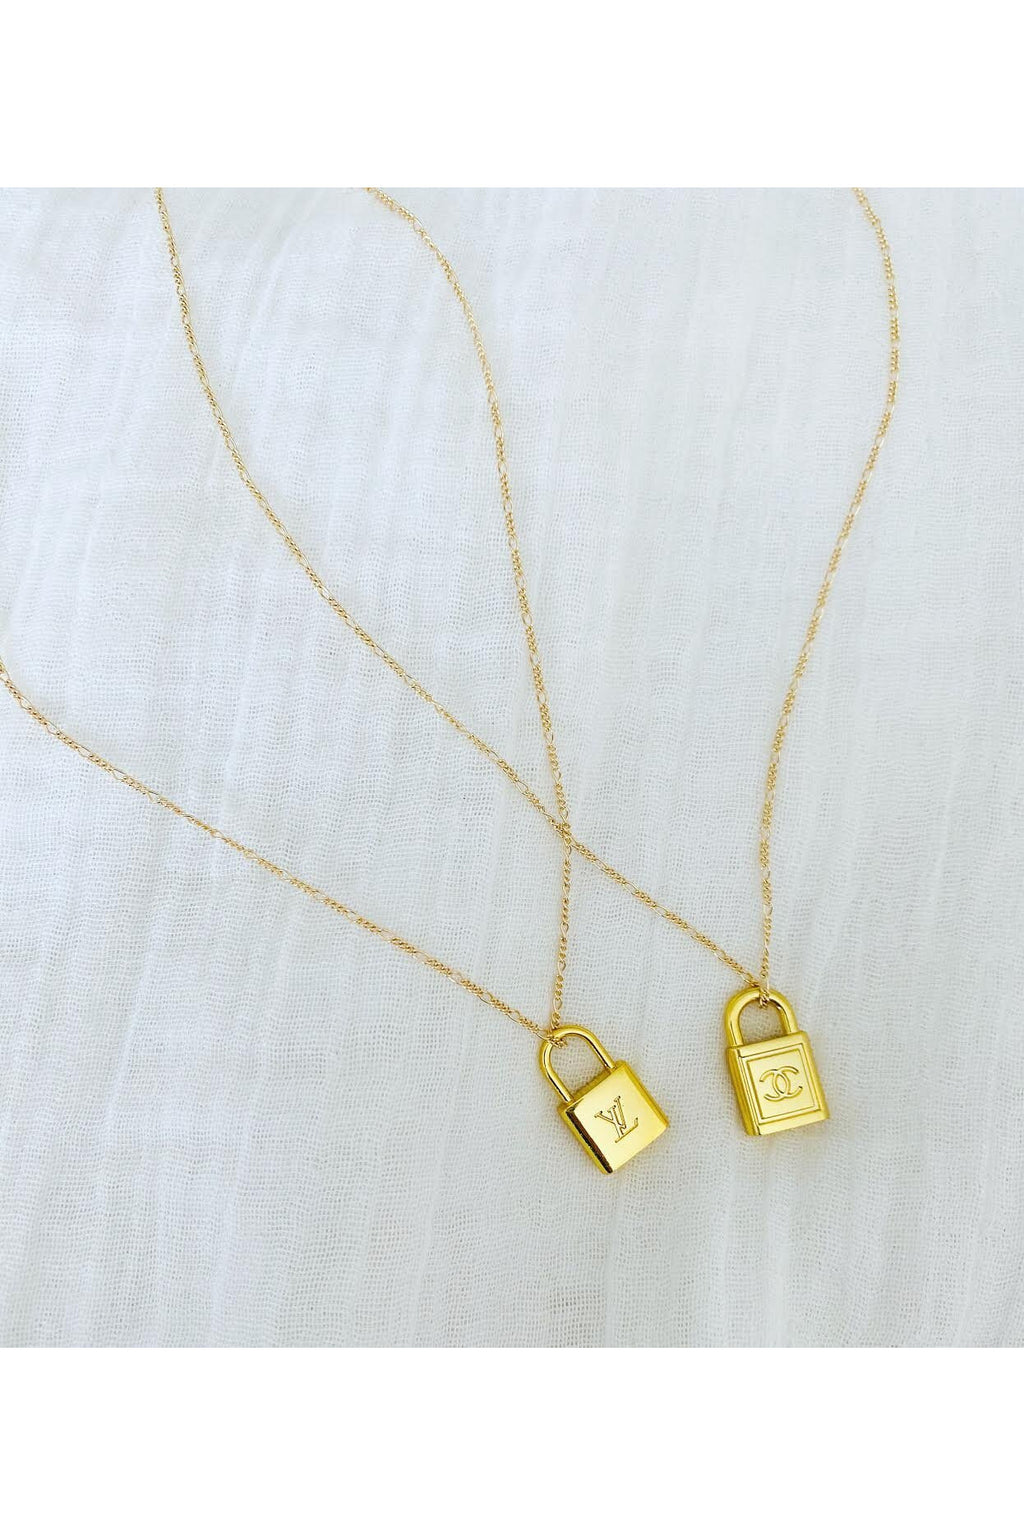 Designer Lock Necklace